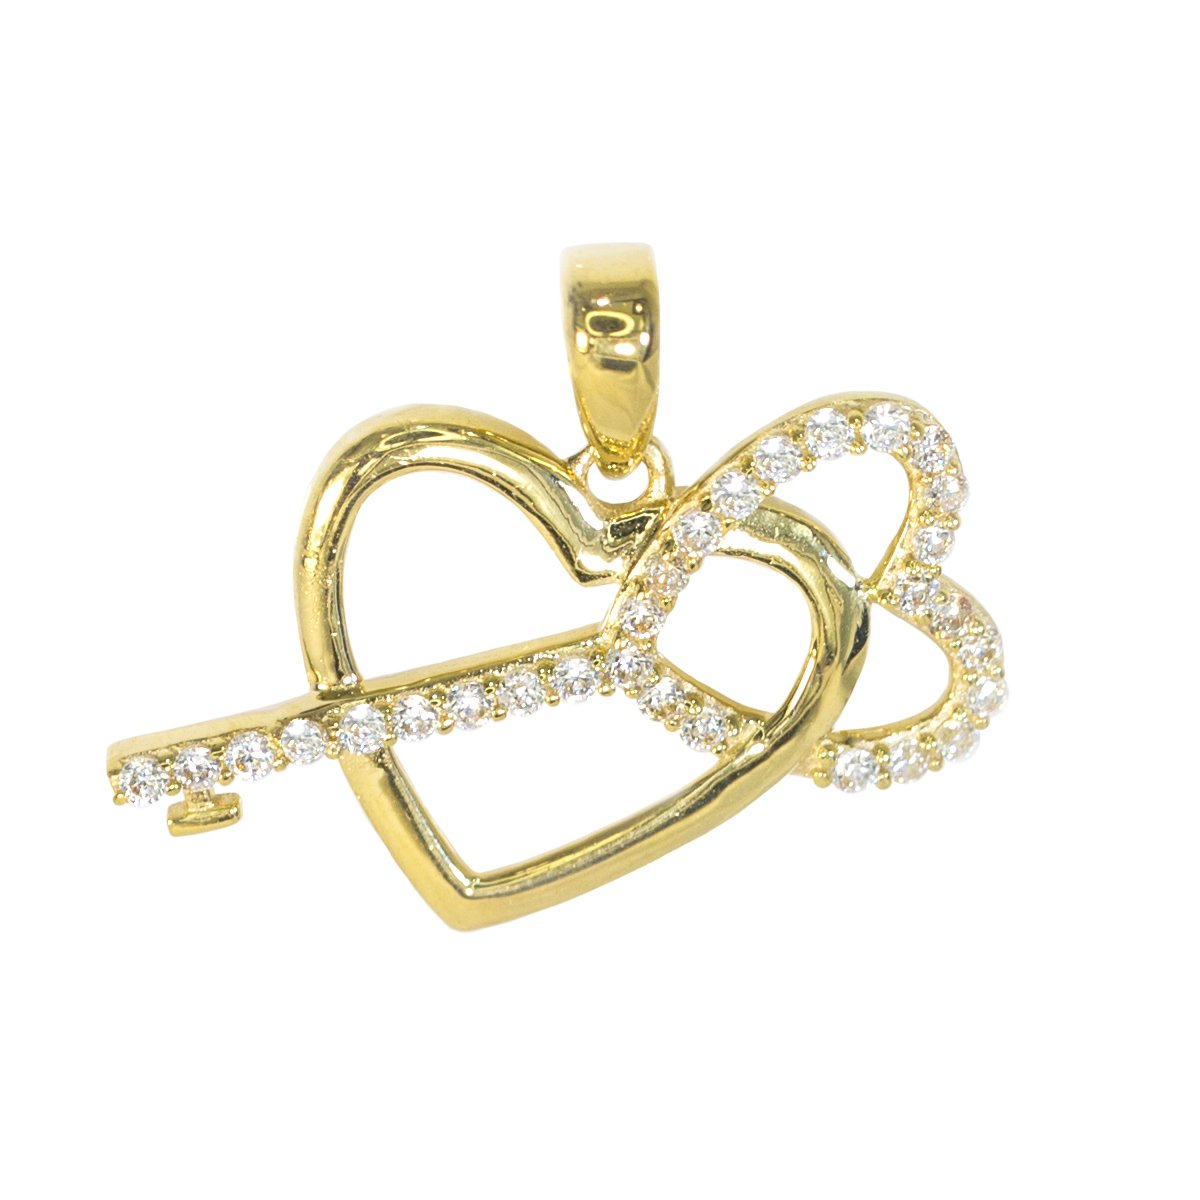 IcedJewels 0.55 cttw Round CZ 10K Yellow Gold Key to my Heart Love Relationship Promise Choker Necklace Charm